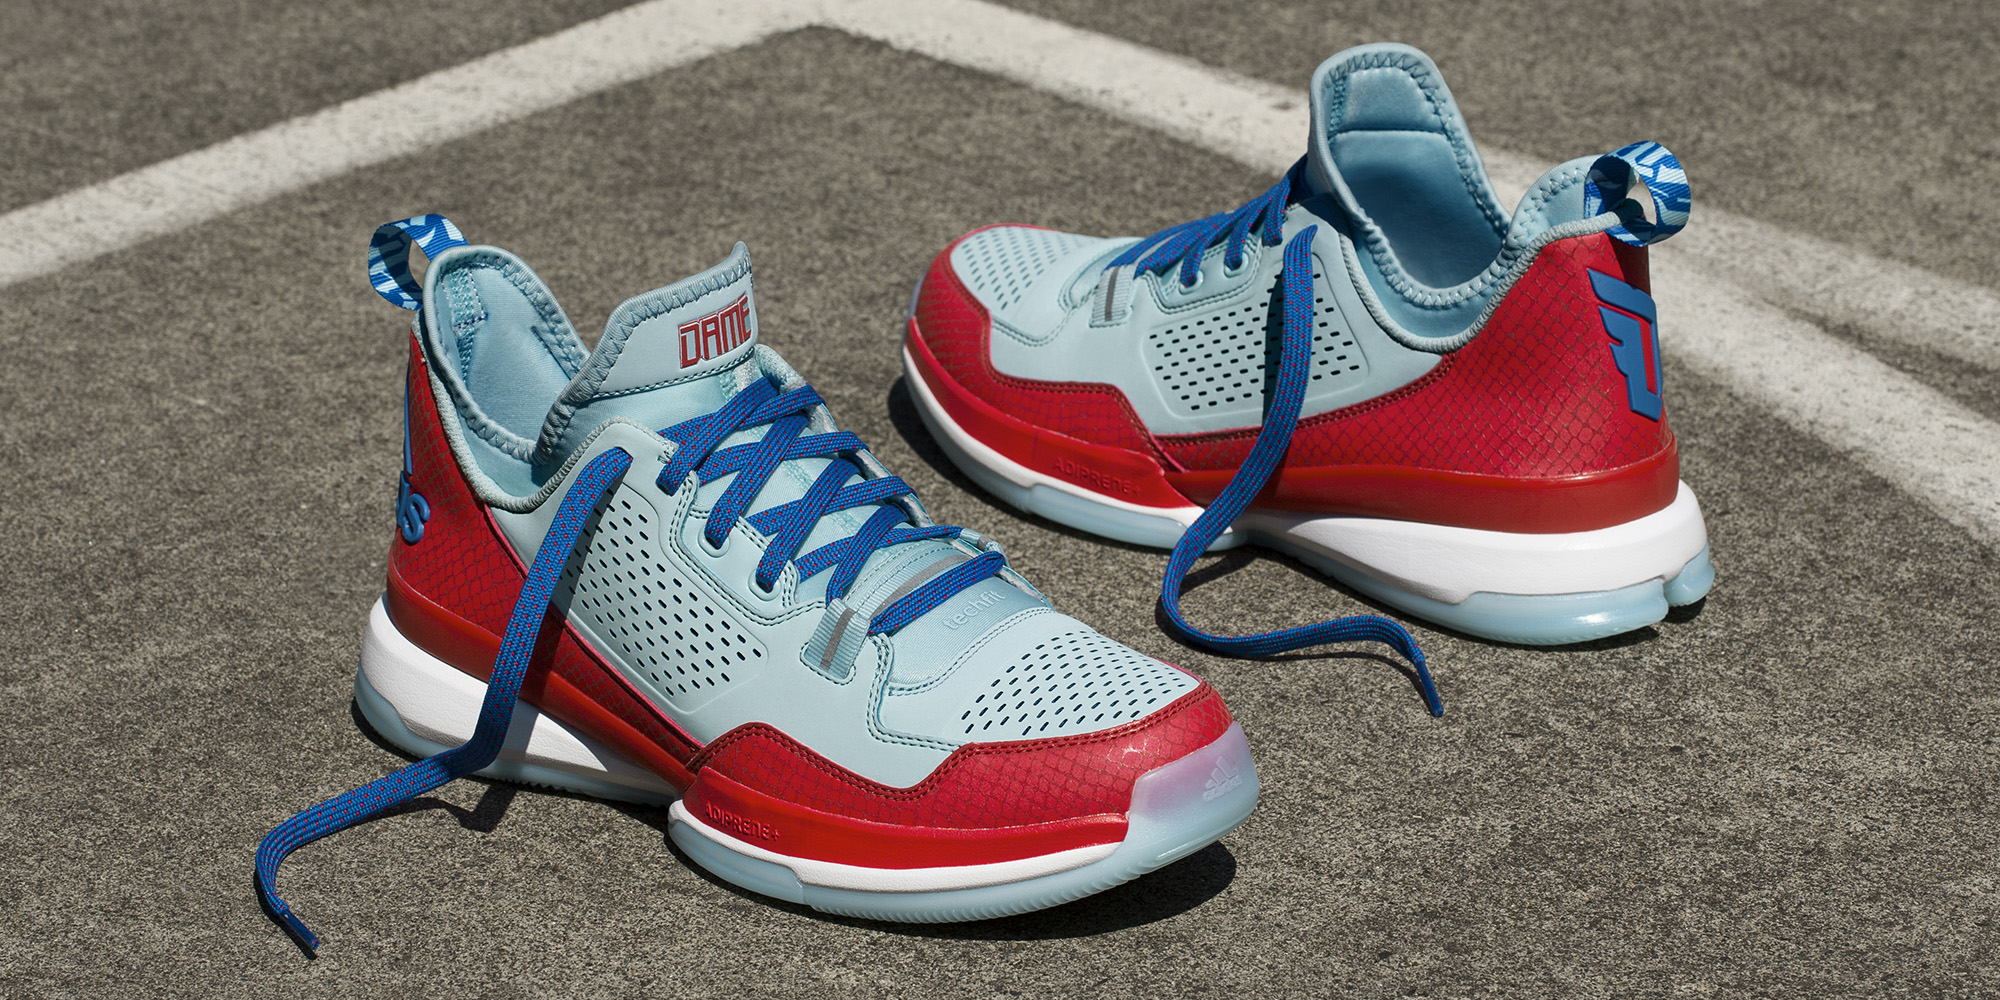 Buy damian lillard shoes blue   OFF35% Discounted 761e6e76783f